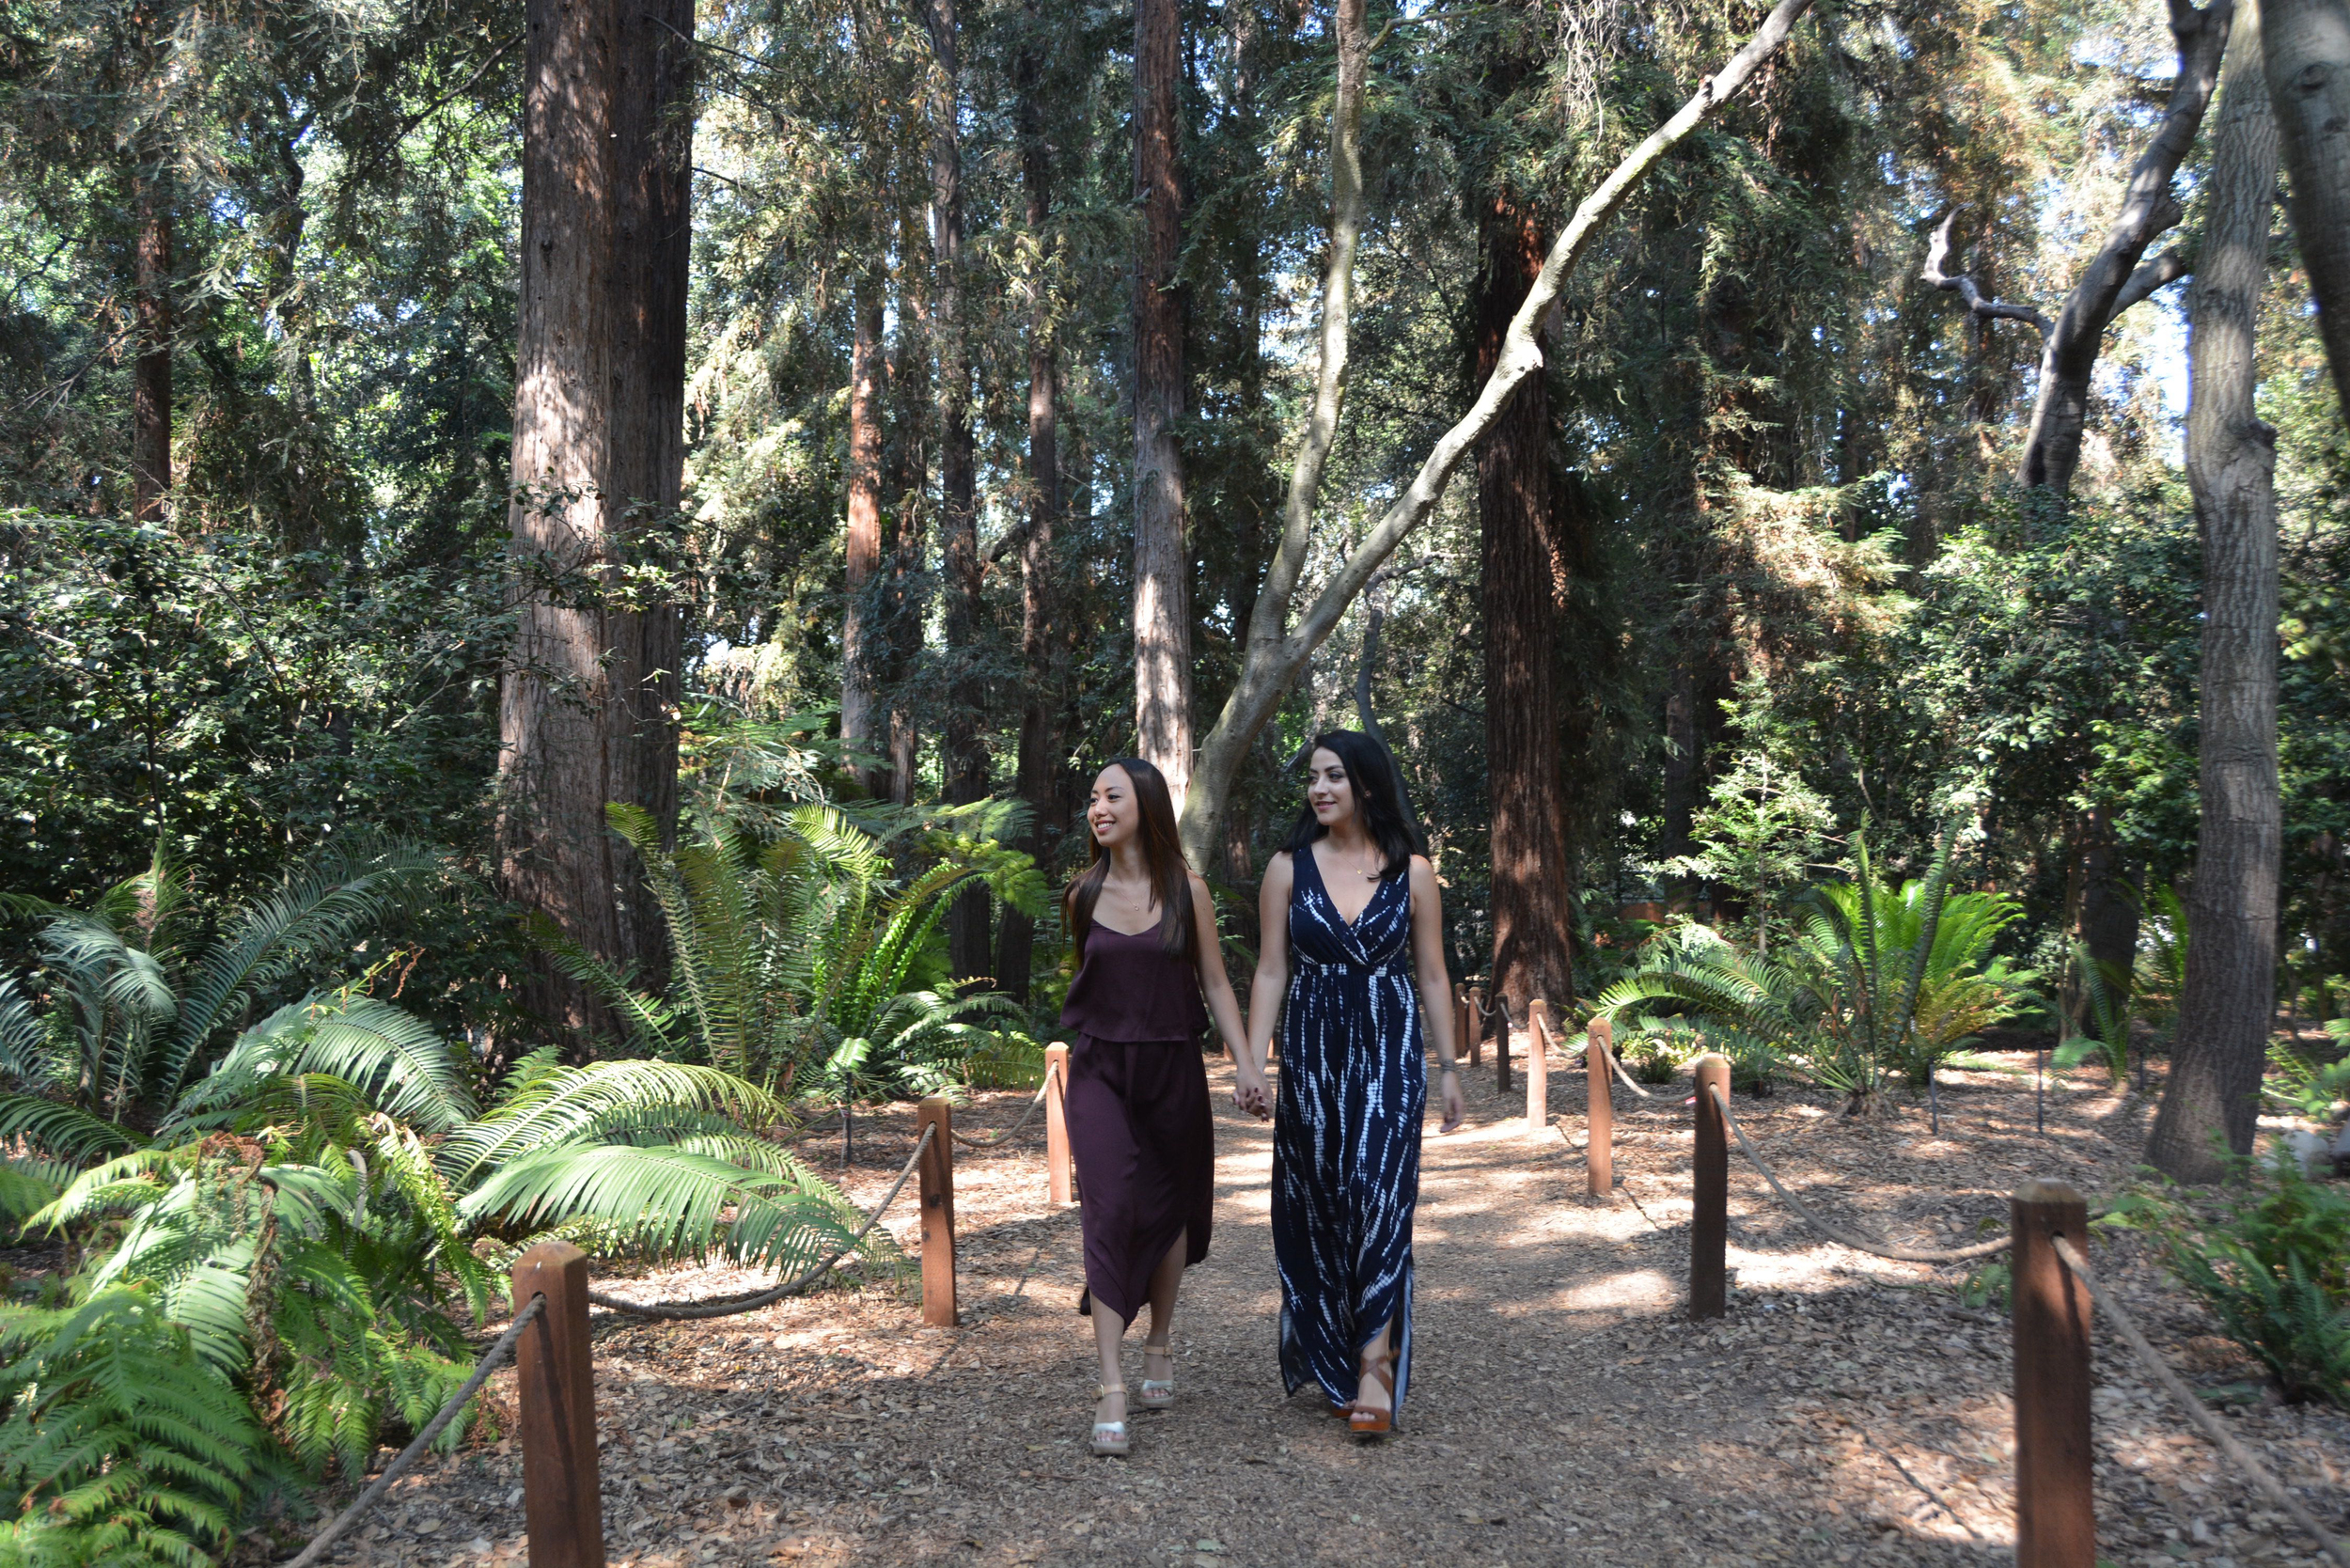 We paired our dresses with wedges. If you plan on visiting the gardens be sure to wear comfortable shoes because there can be a lot of walking involved. Quick tip: always carry band-aids in your wallet, you never know when you will need one!